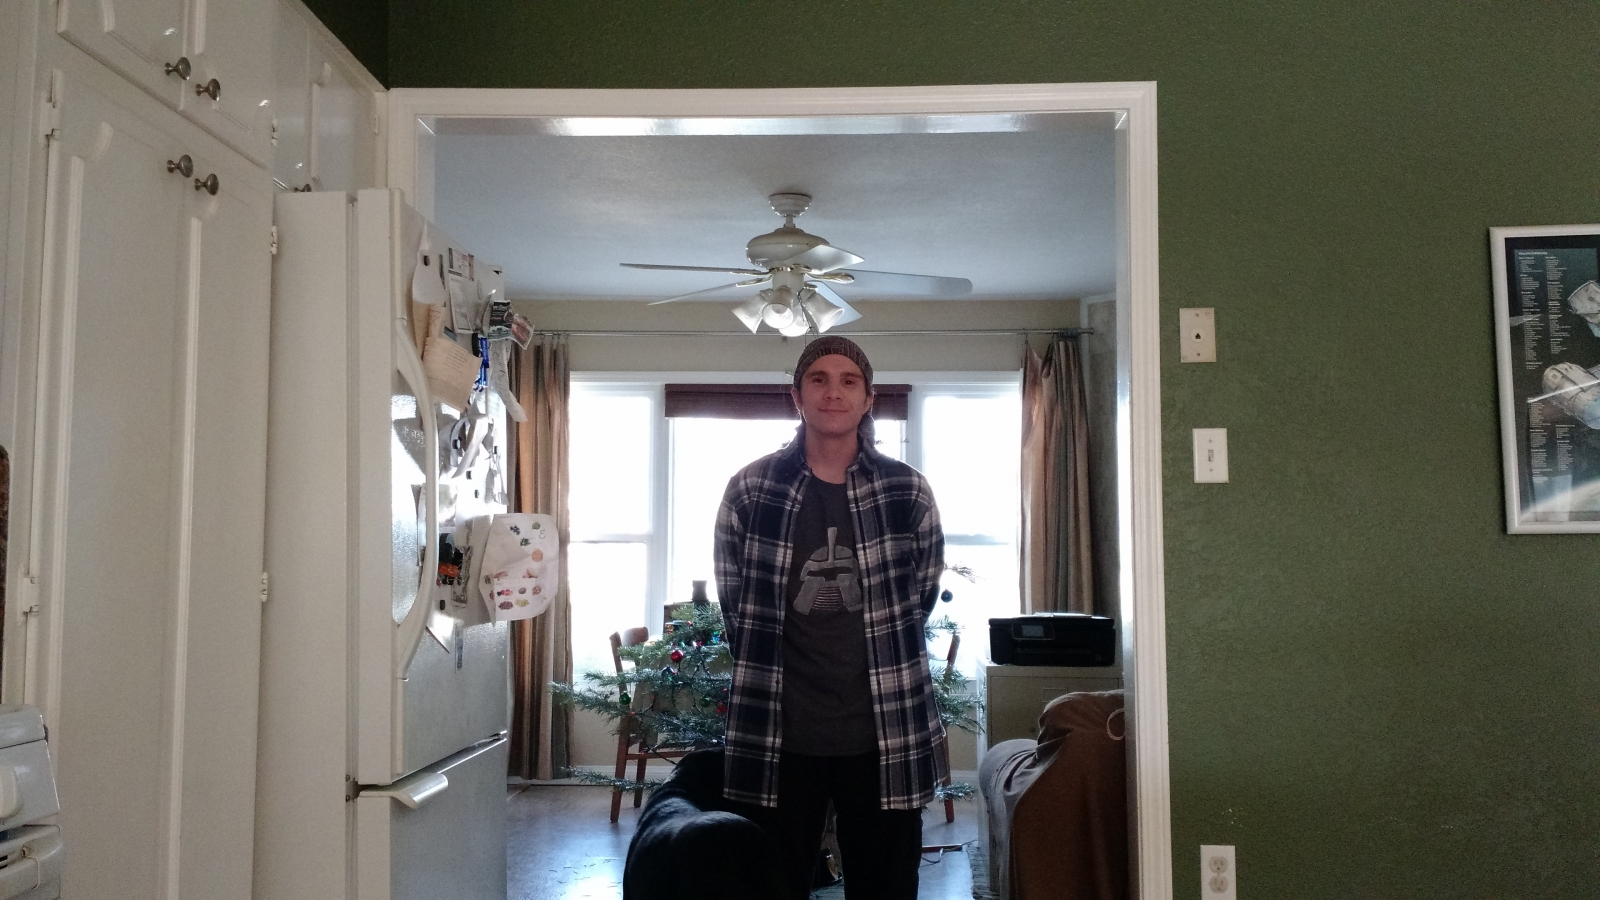 My new tee shirt and flannel shirt from Xmas 16'